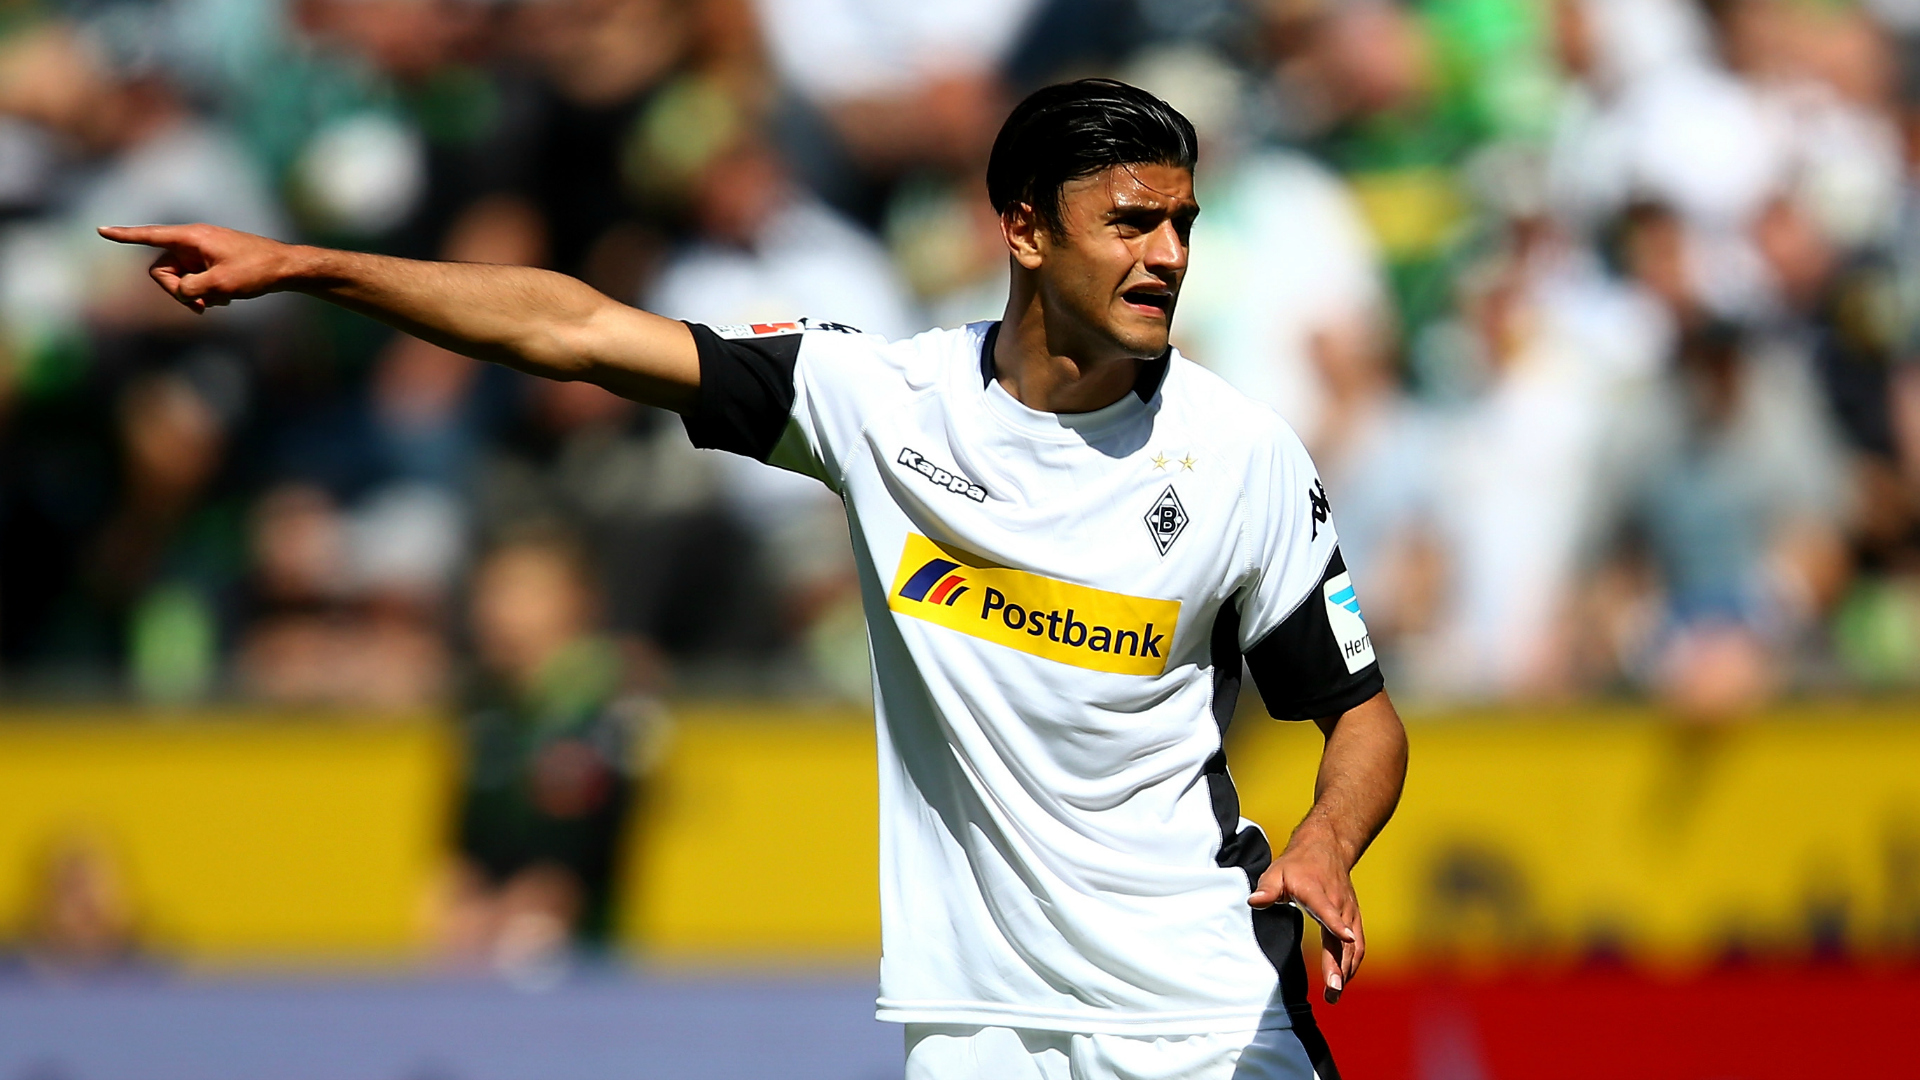 Mahmoud Dahoud explains why he joined Borussia Dortmund ahead of Liverpool